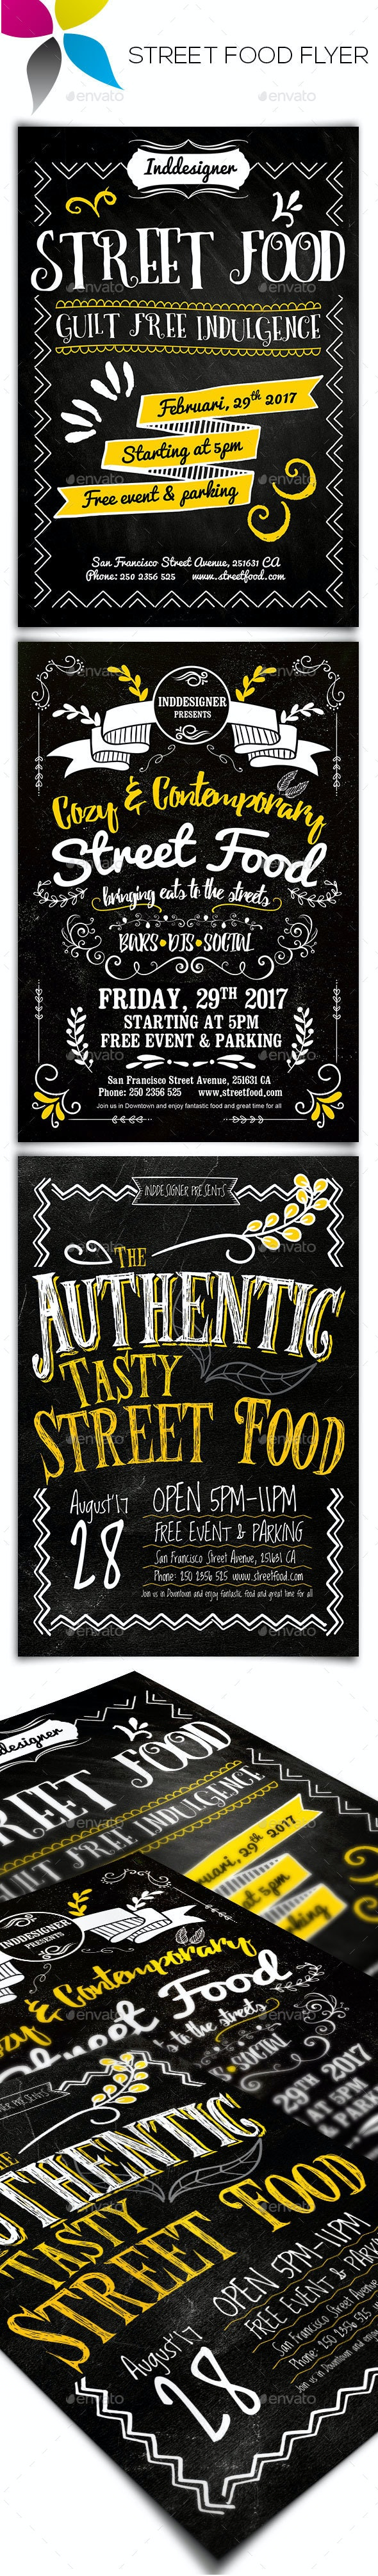 Street Food Flyer - Restaurant Flyers